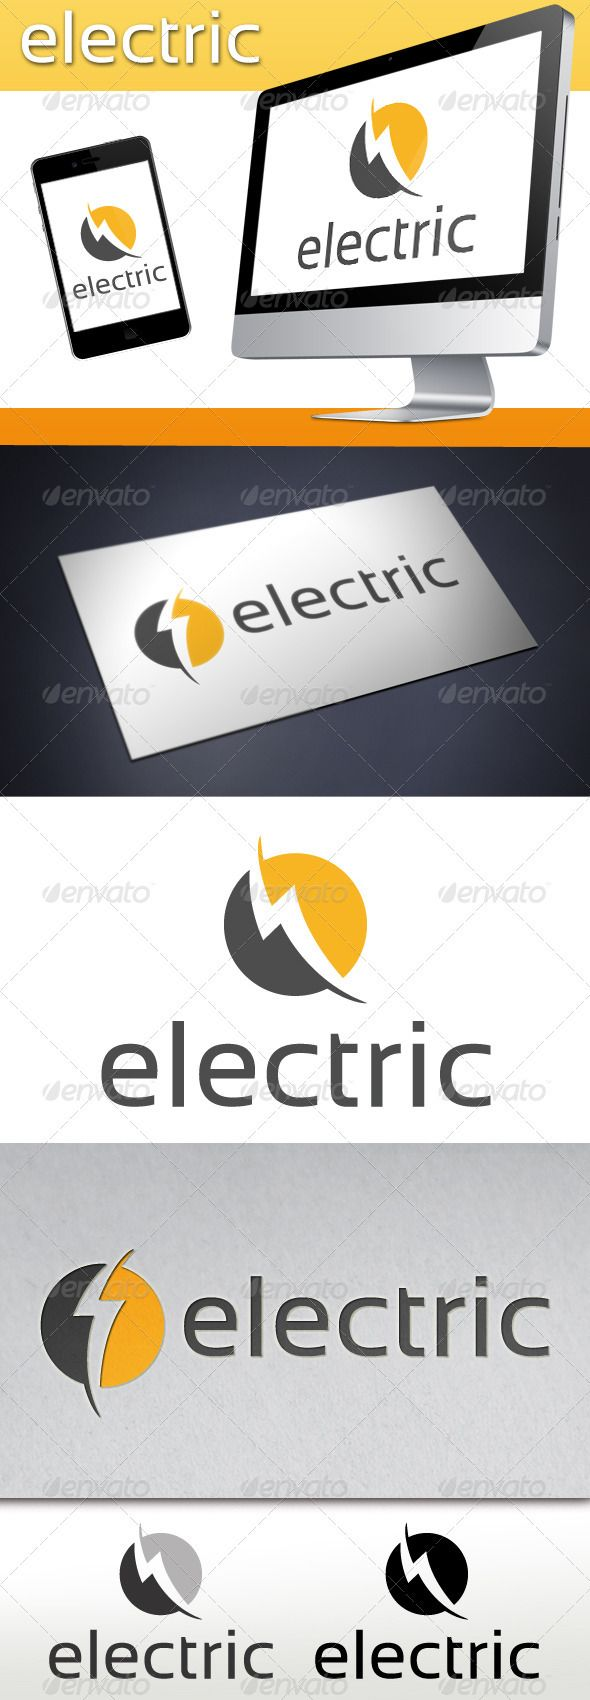 Find A Master Electrician  Master Electricians